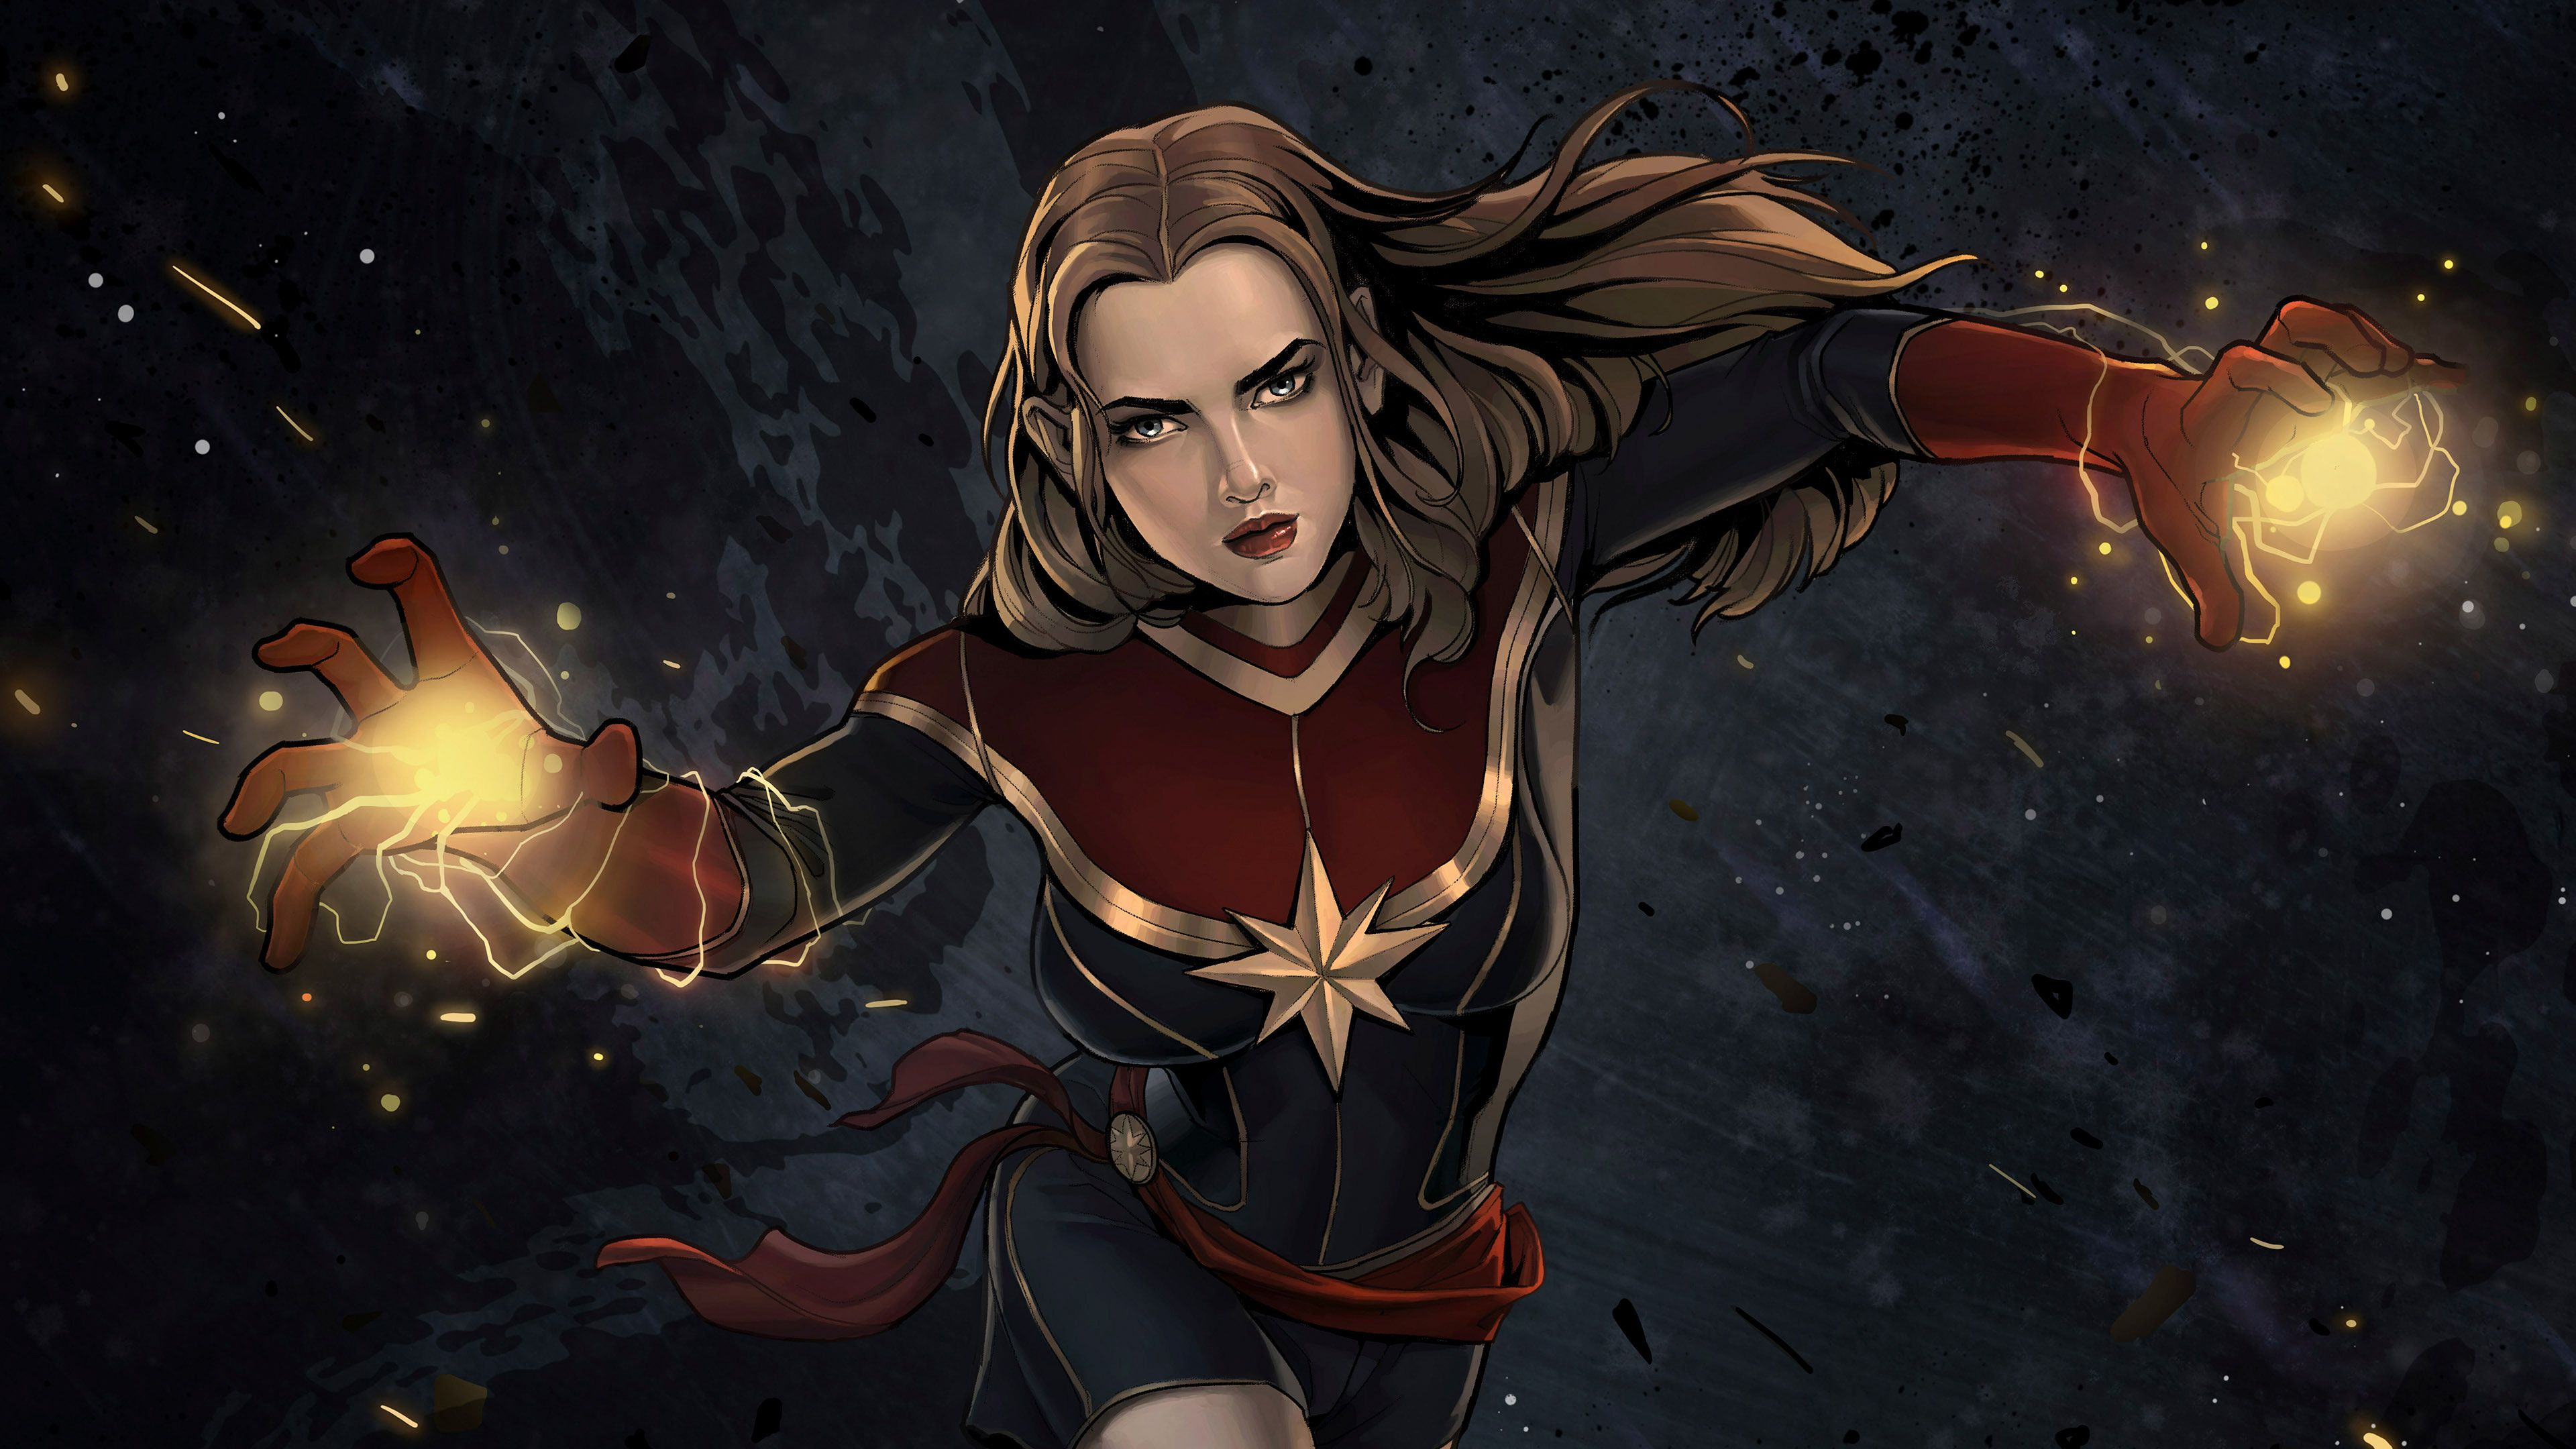 Captain Marvel Comic Artwork 4k Superheroes Wallpapers Hd Wallpapers Digital Art Wallpapers Captain Marv Marvel Comics Artwork Captain Marvel Comics Artwork